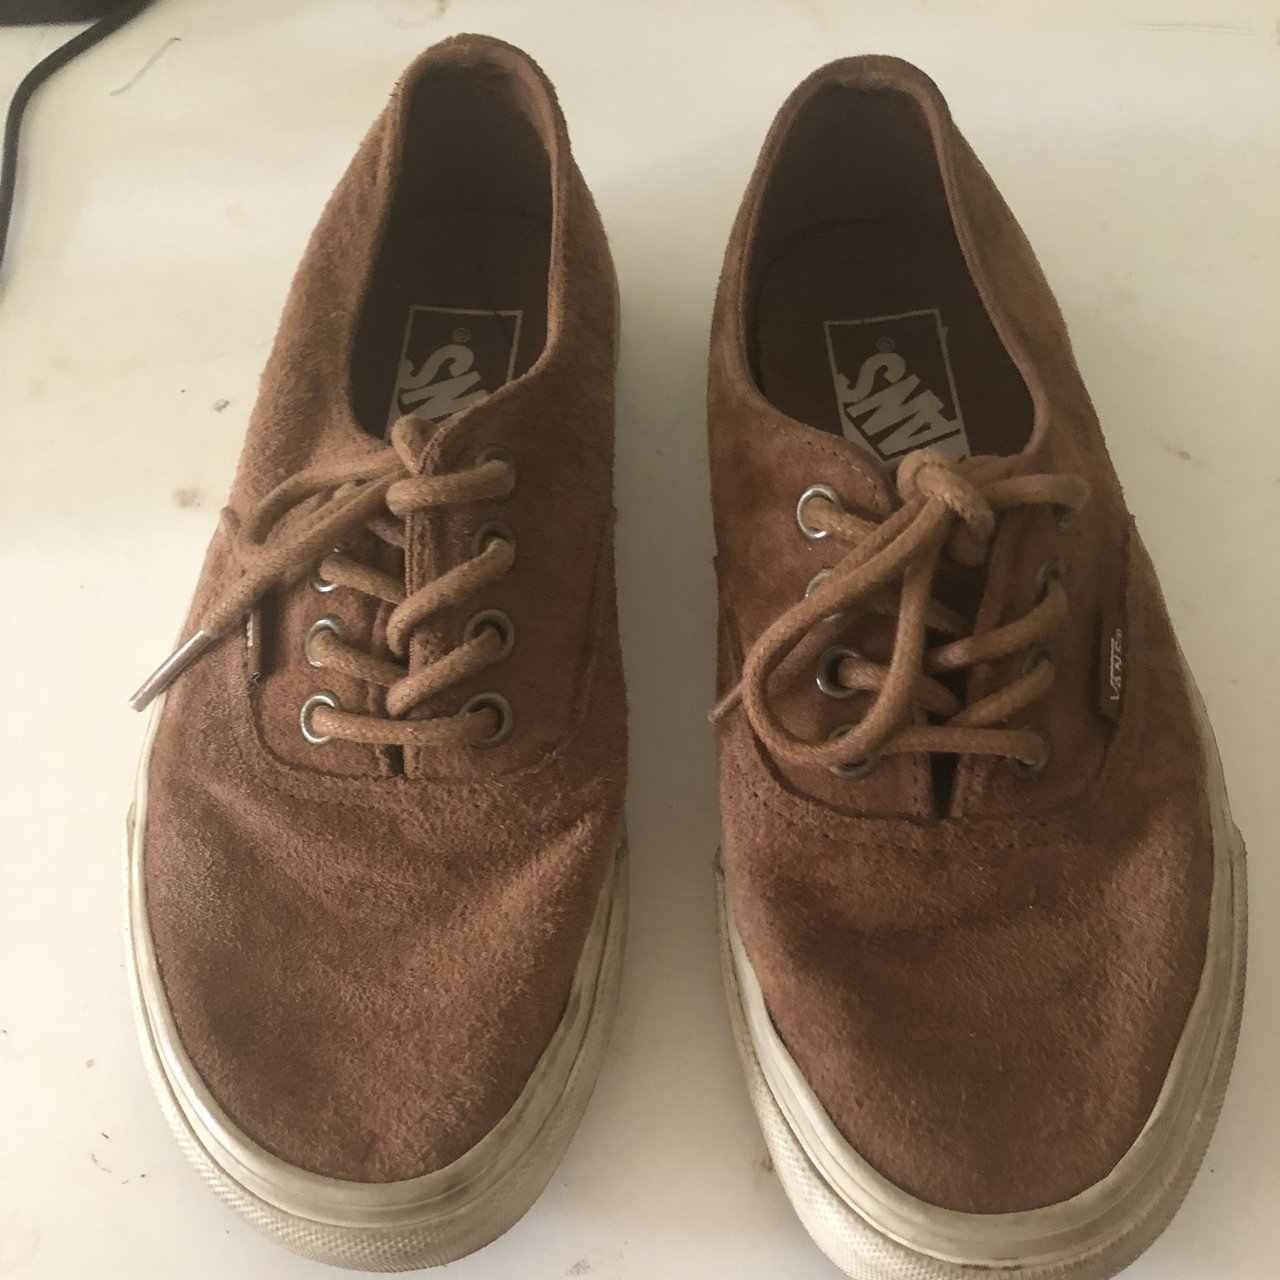 9d25020ab059 Brown suede vans! Used a couple of times but still in great - Depop